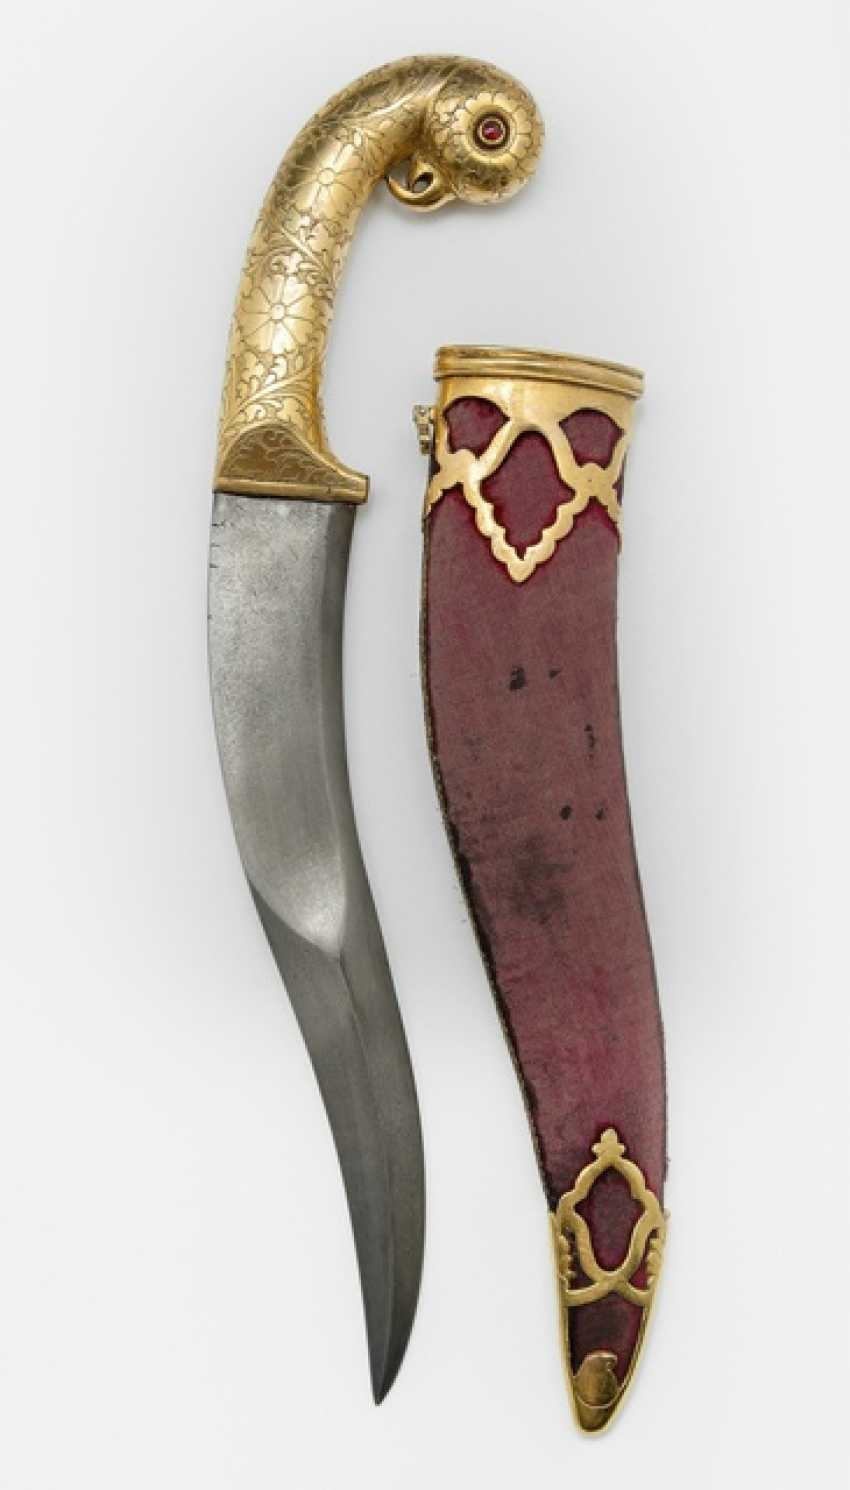 Dagger with steel blade and handle with a parrot head and ruby eyes, fire gilt, scabbard - photo 1